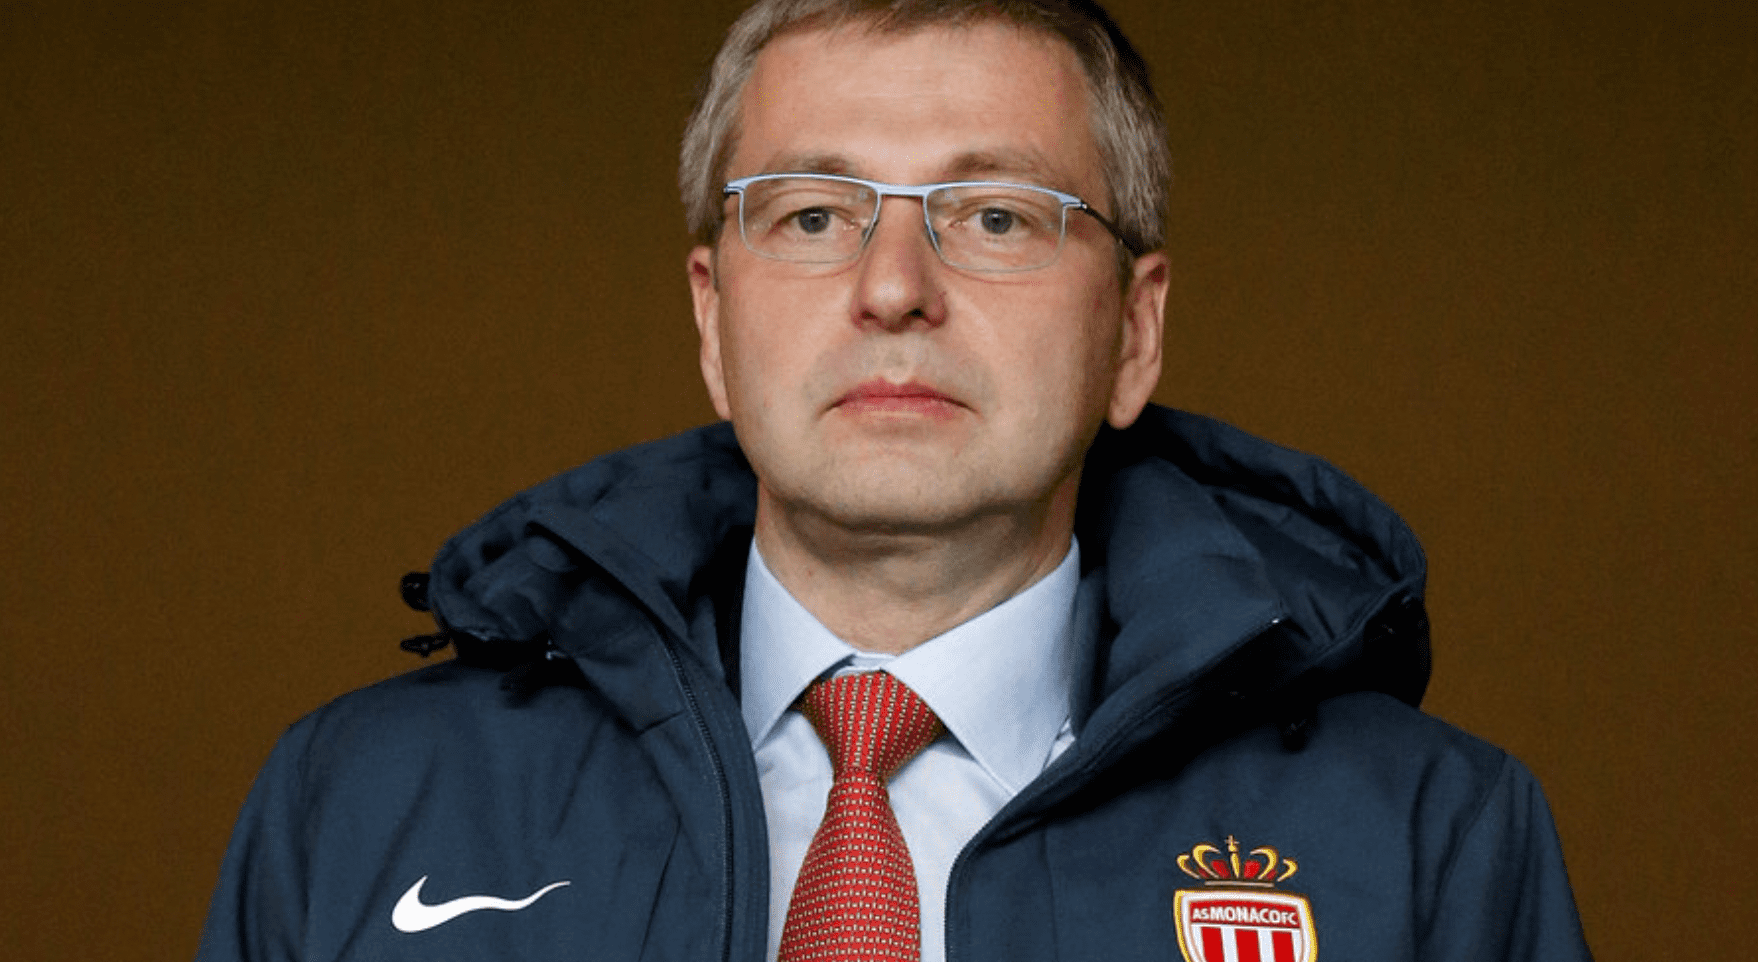 Rybolovlev loses last Swiss lawsuit – says he will appeal